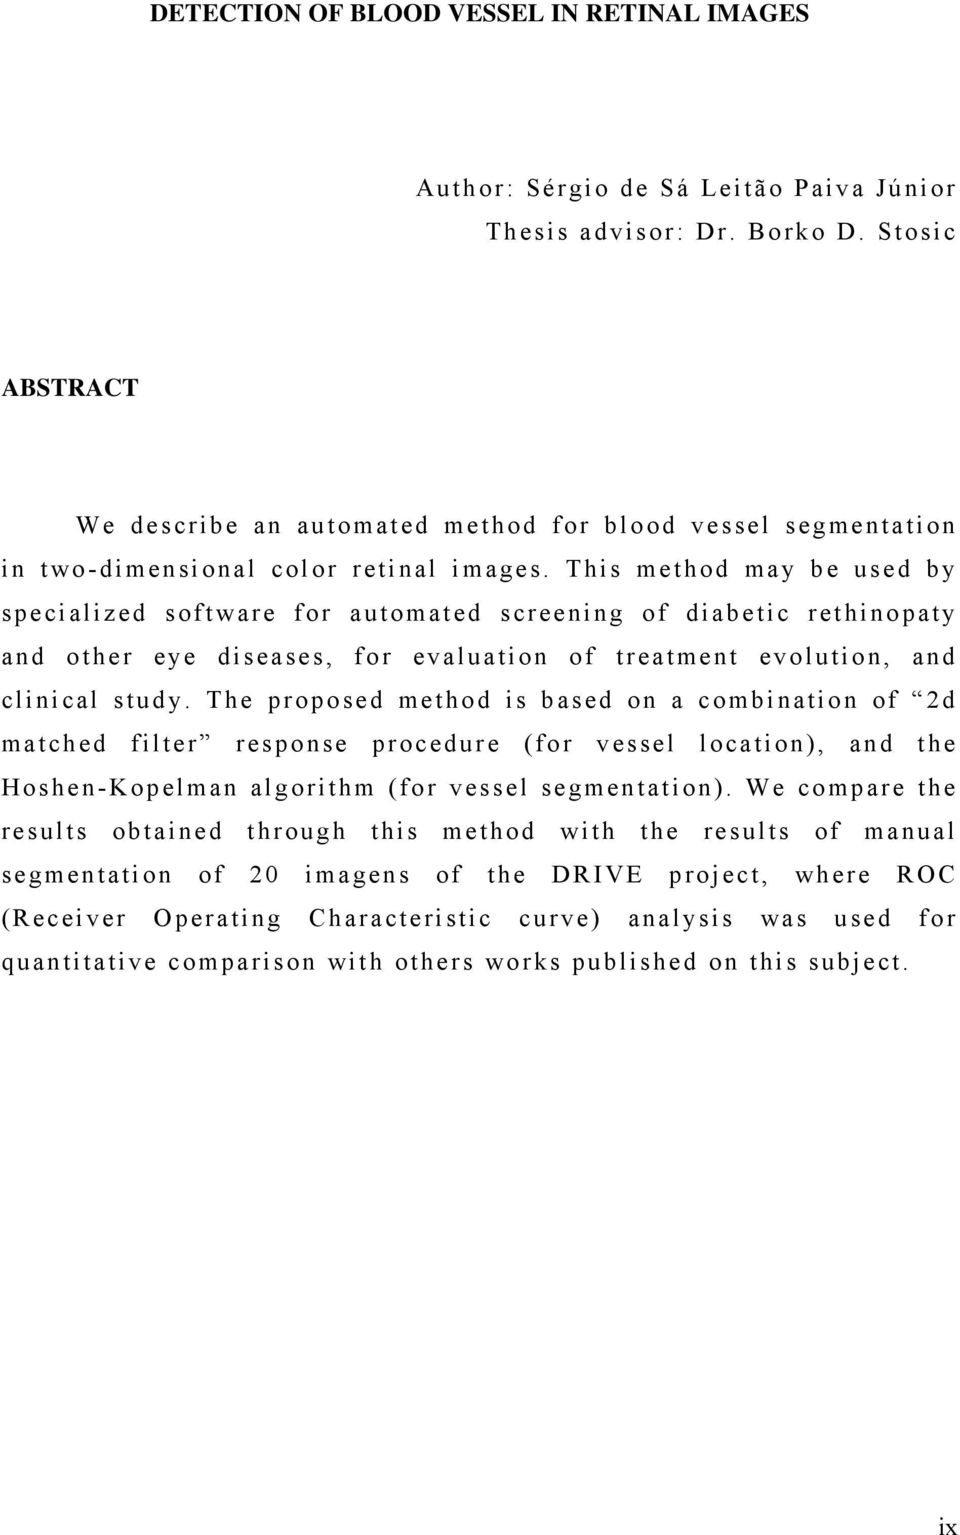 This method may be used by specialized software for automated screening of diabetic rethinopaty and other eye diseases, for evaluation of treatment evolution, and clinical study.